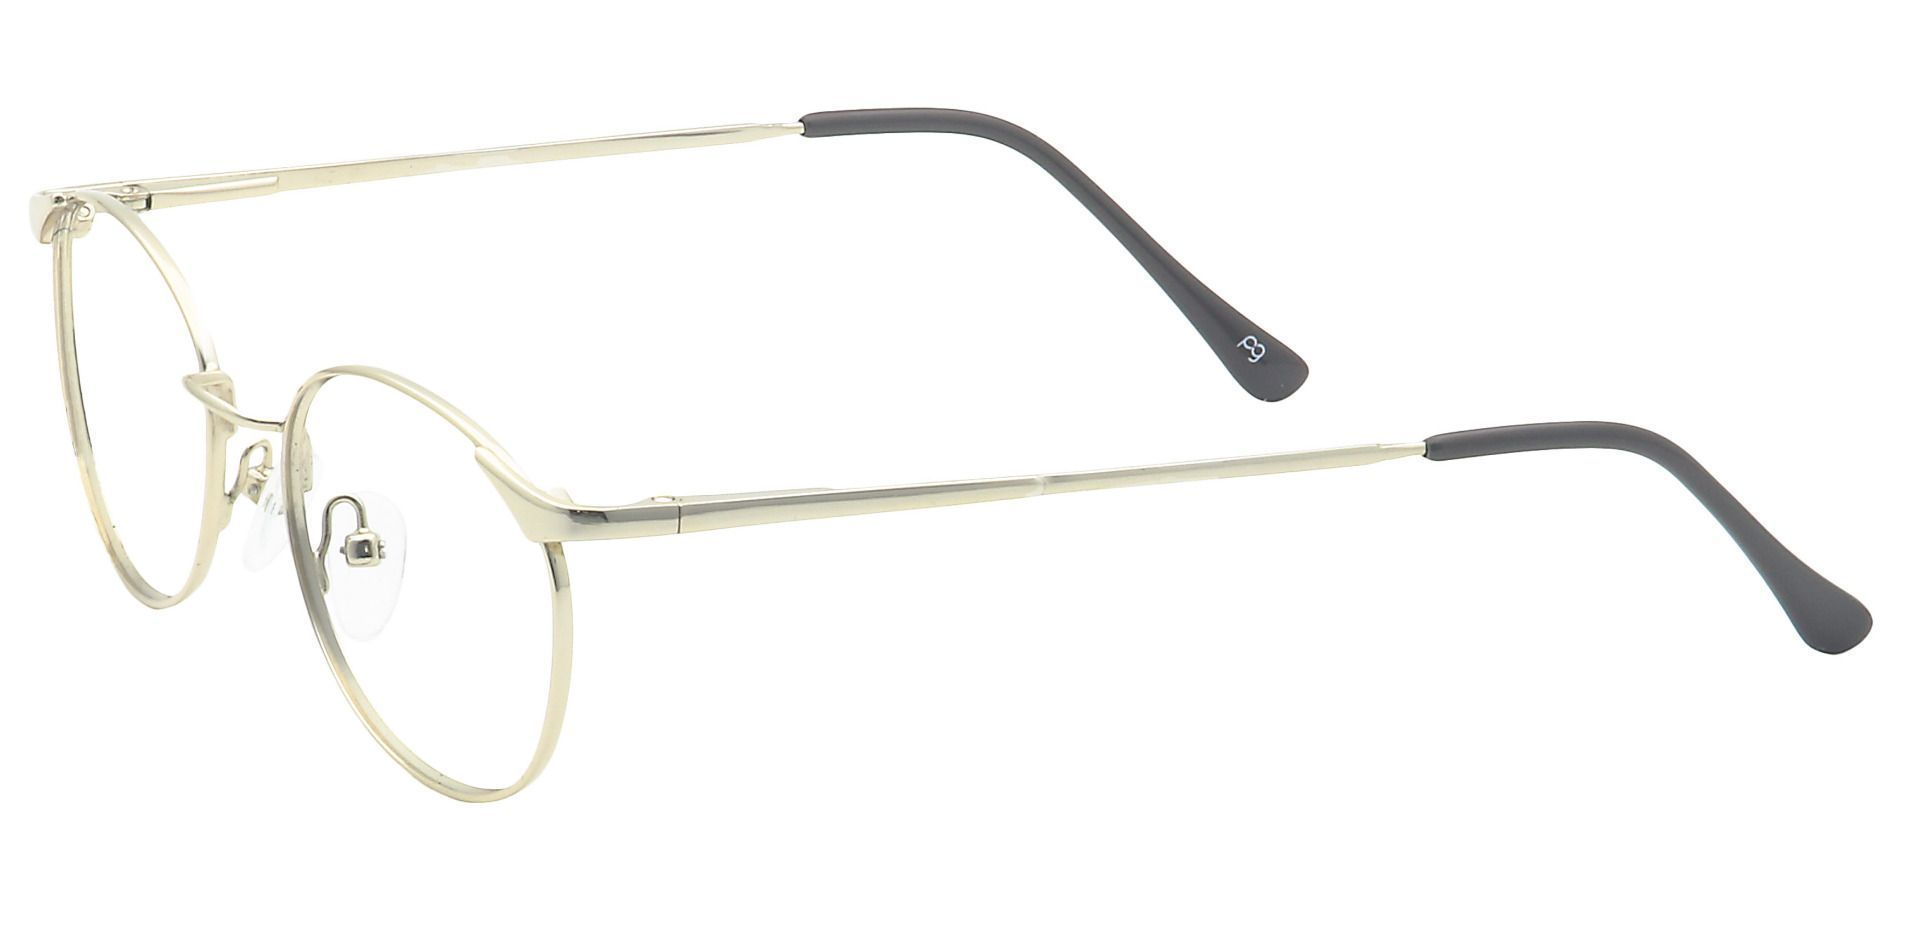 Collen Round Progressive Glasses - Yellow